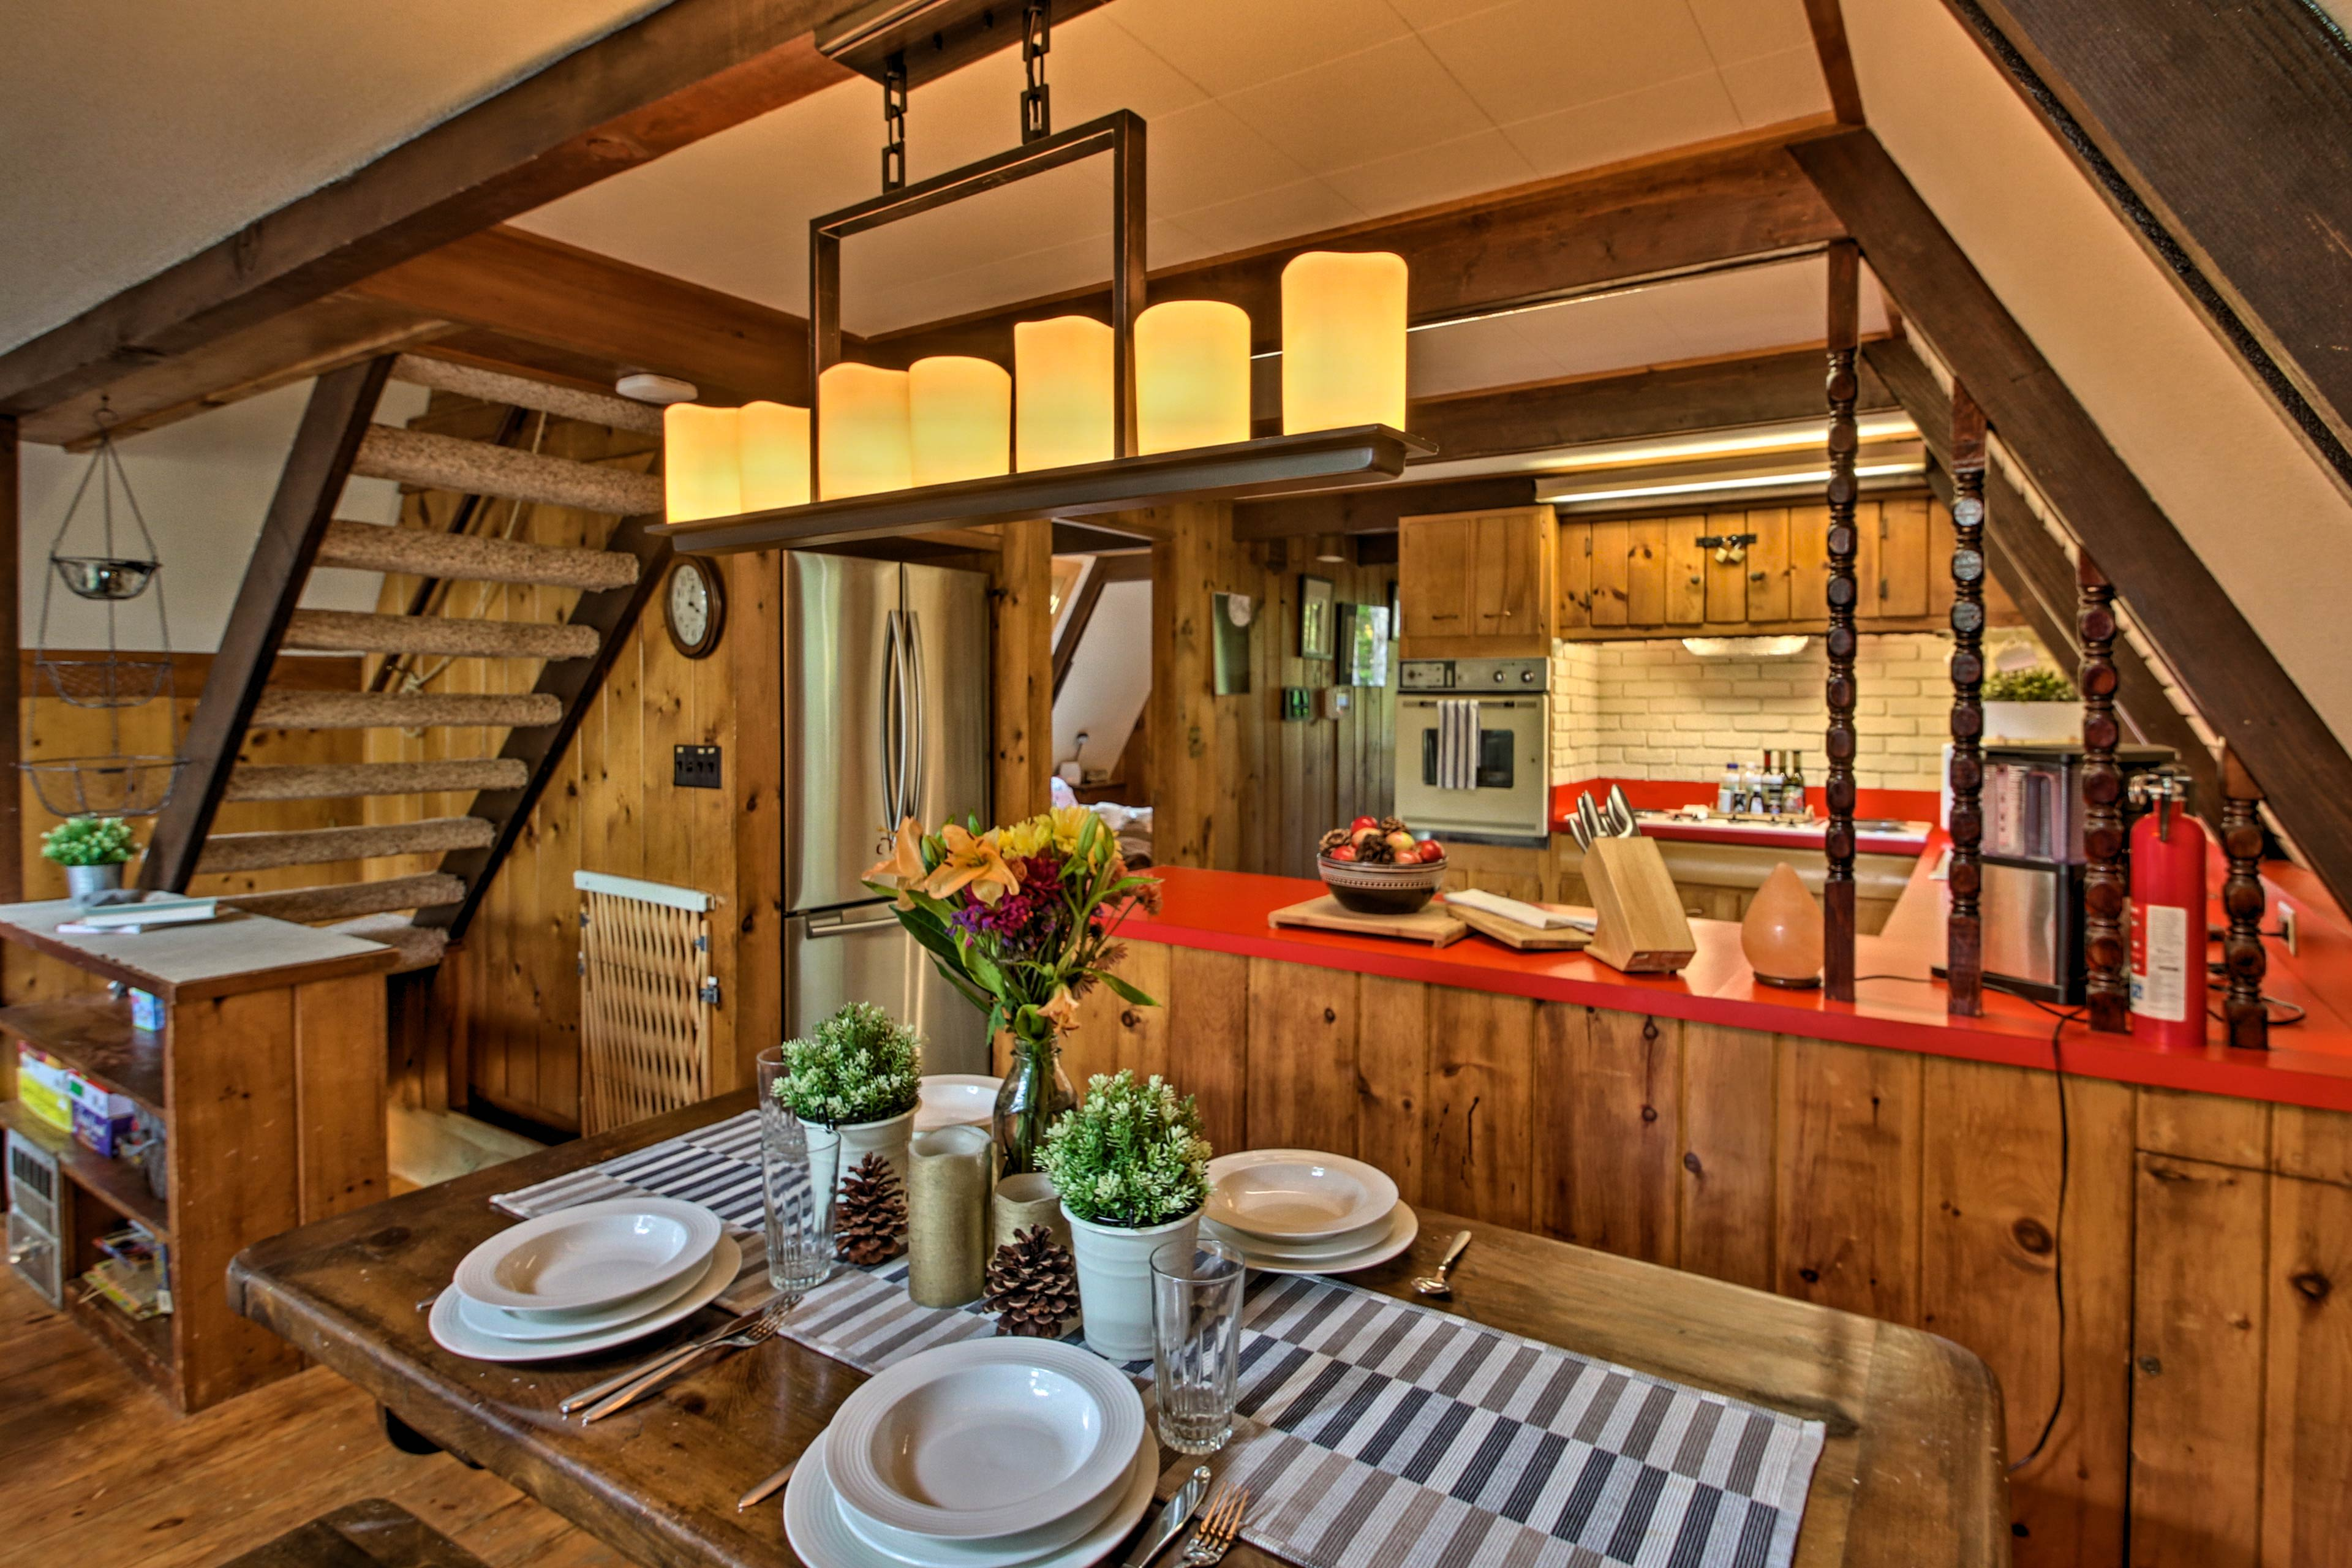 Dine in style at this rustic wooden kitchen table.